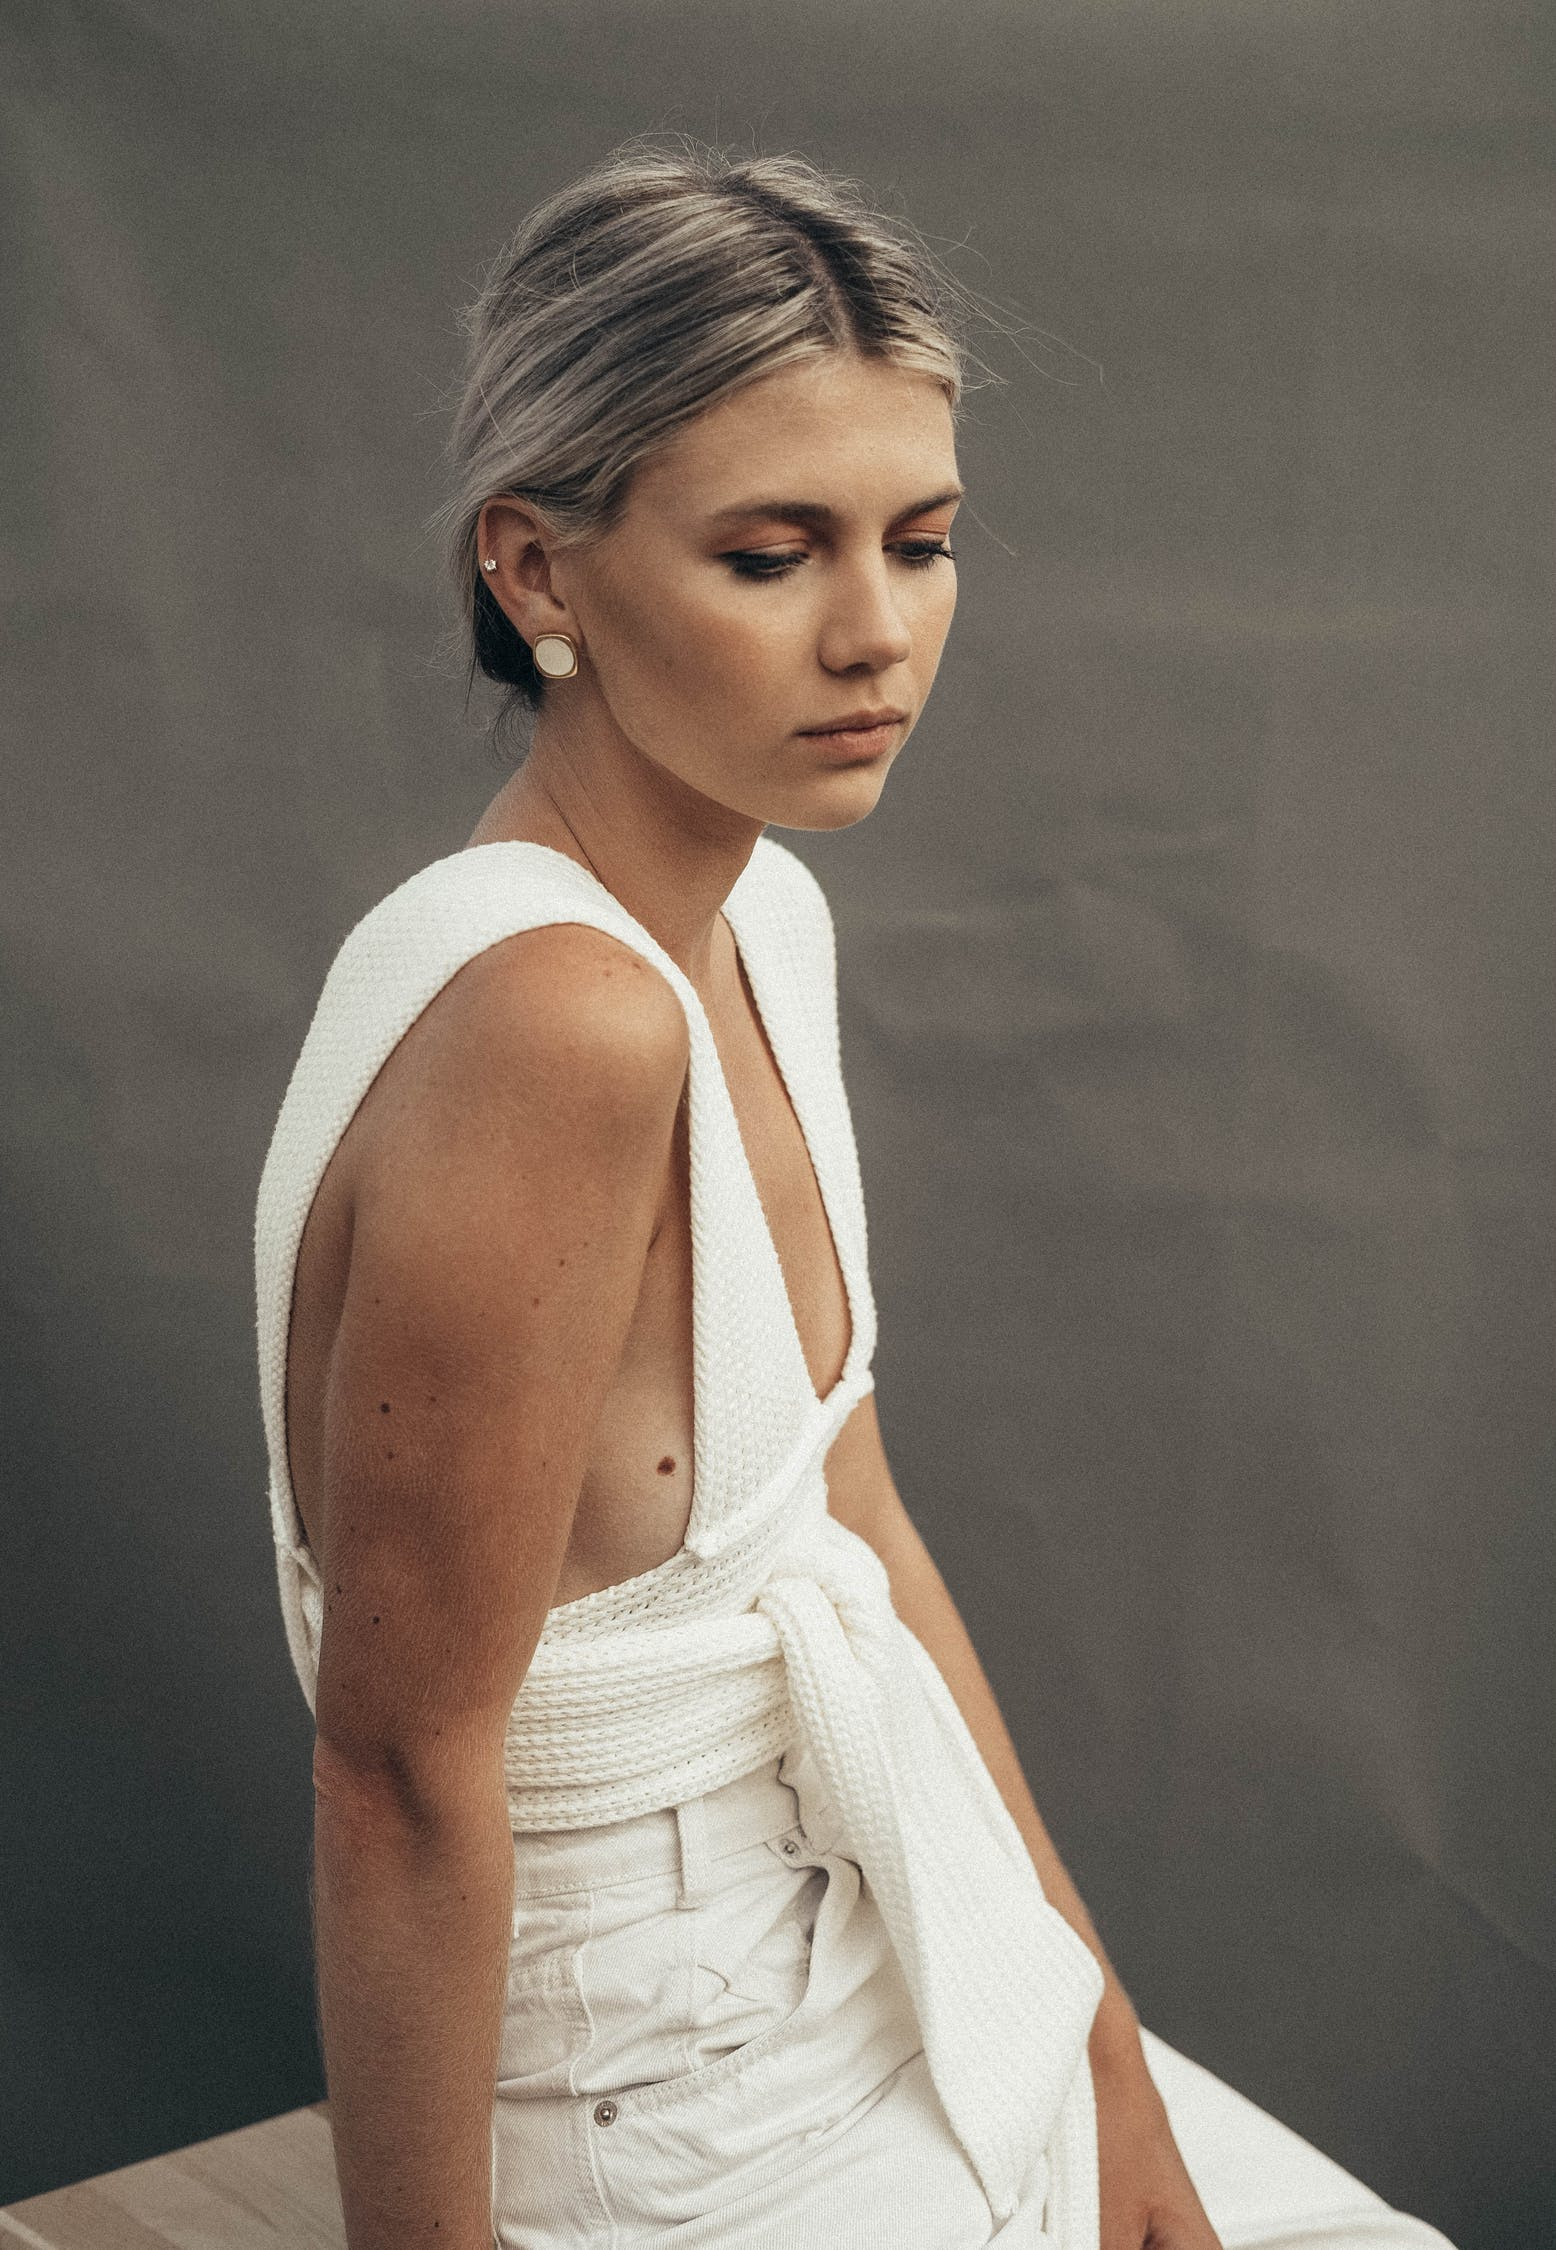 Thoughtful female with tucked back hair in white clothes wearing earrings looking down while sitting on chair on gray background